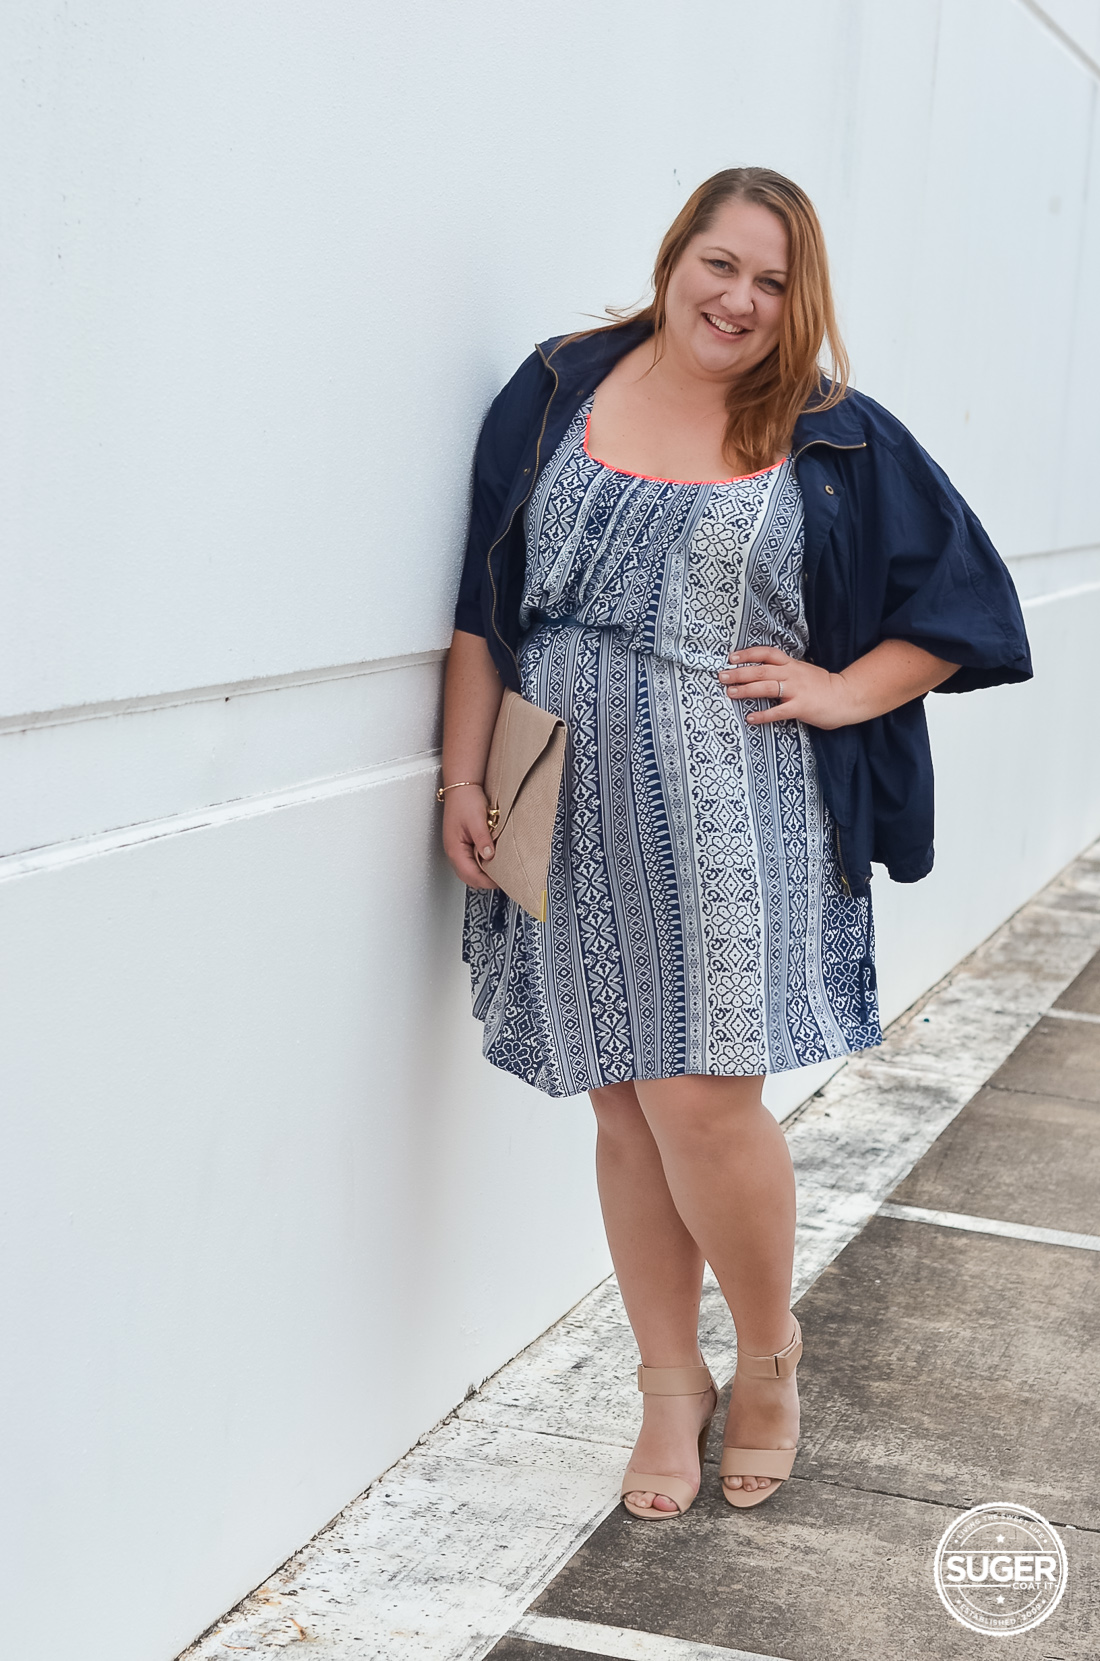 beme australia plus size fashion blogger review-10